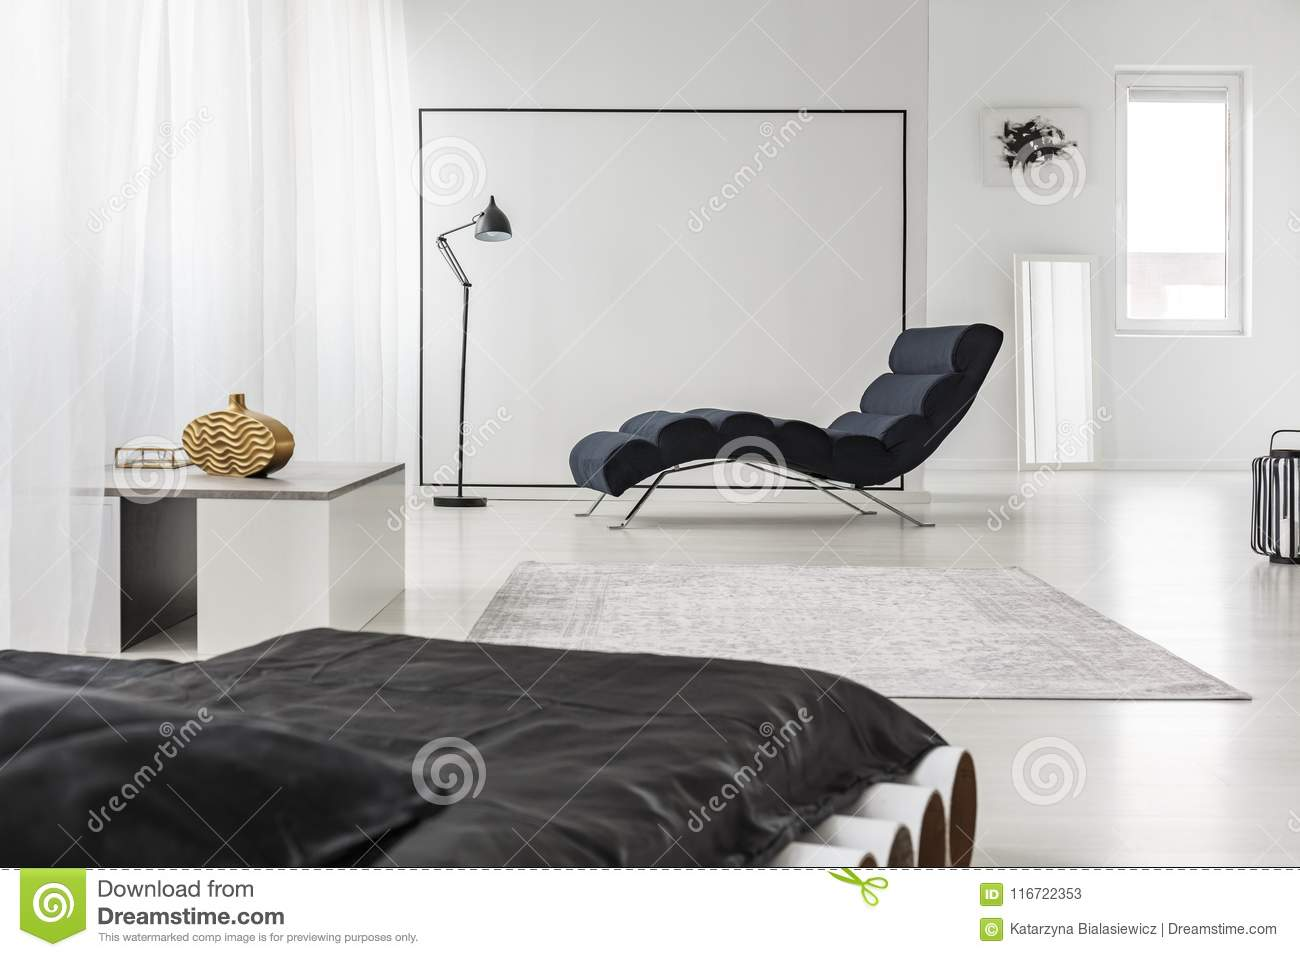 Spacious Bedroom With Chaise Lounge Stock Image - Image of ...